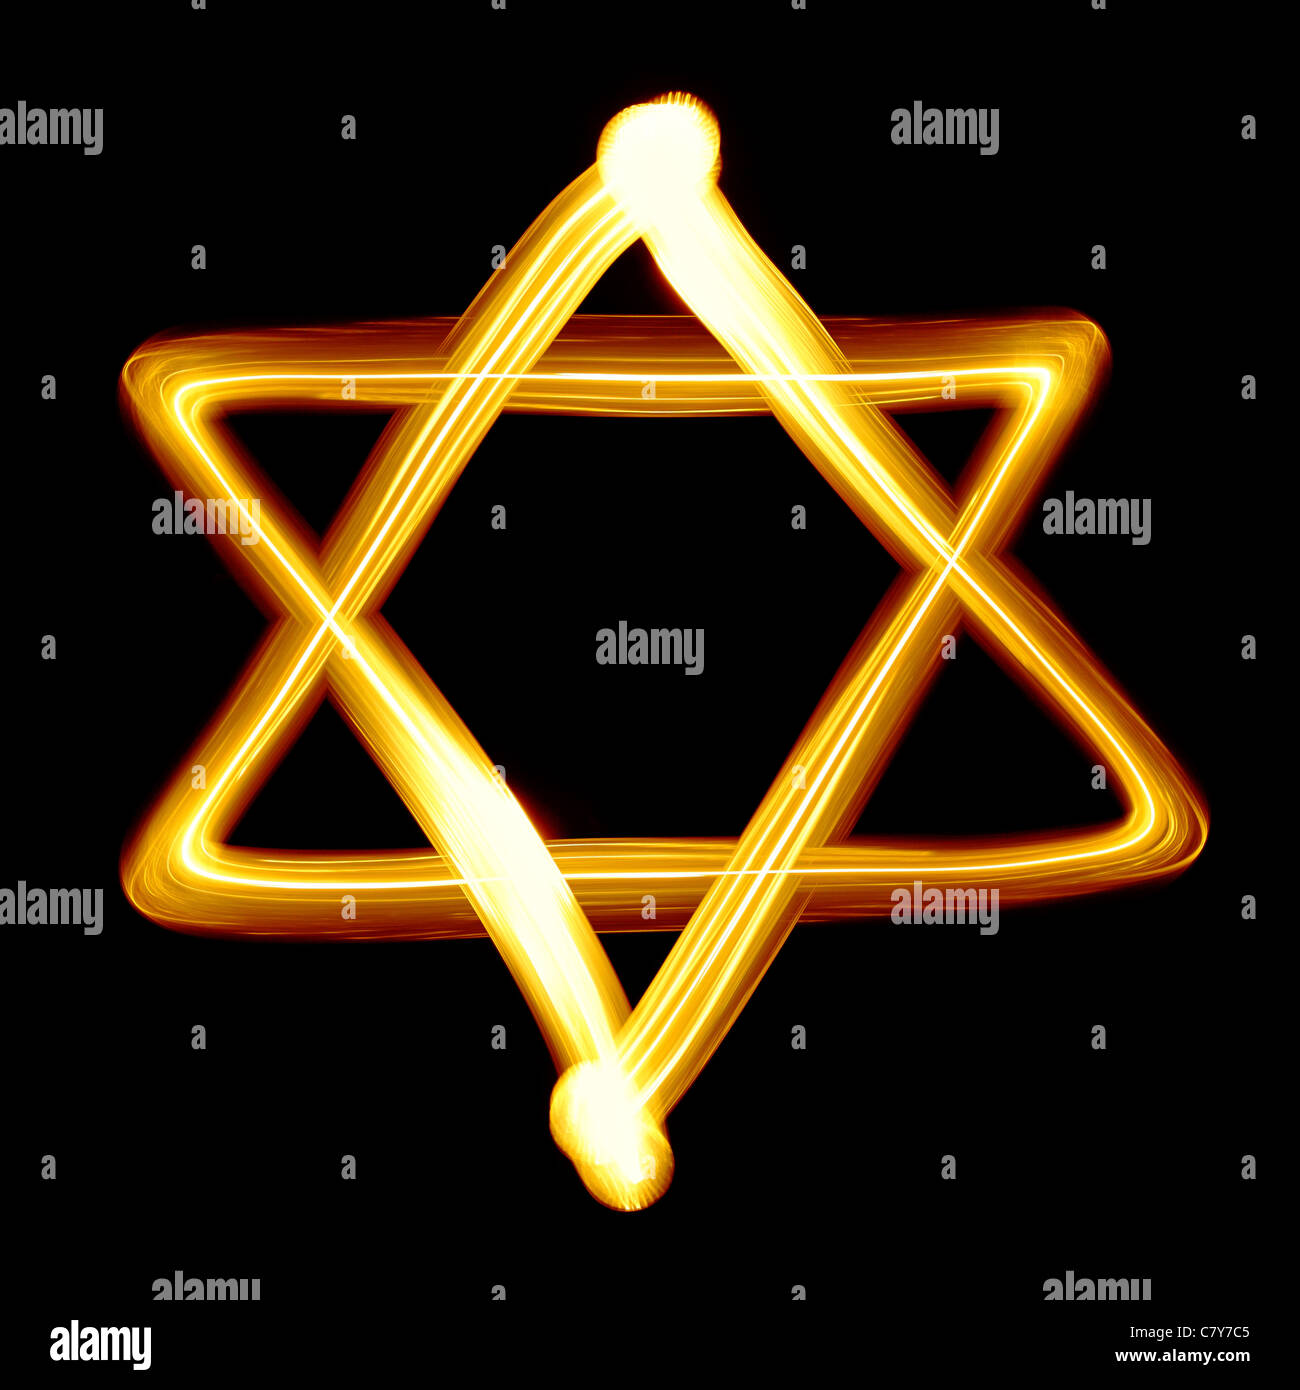 Star of David created by light close-up - Stock Image